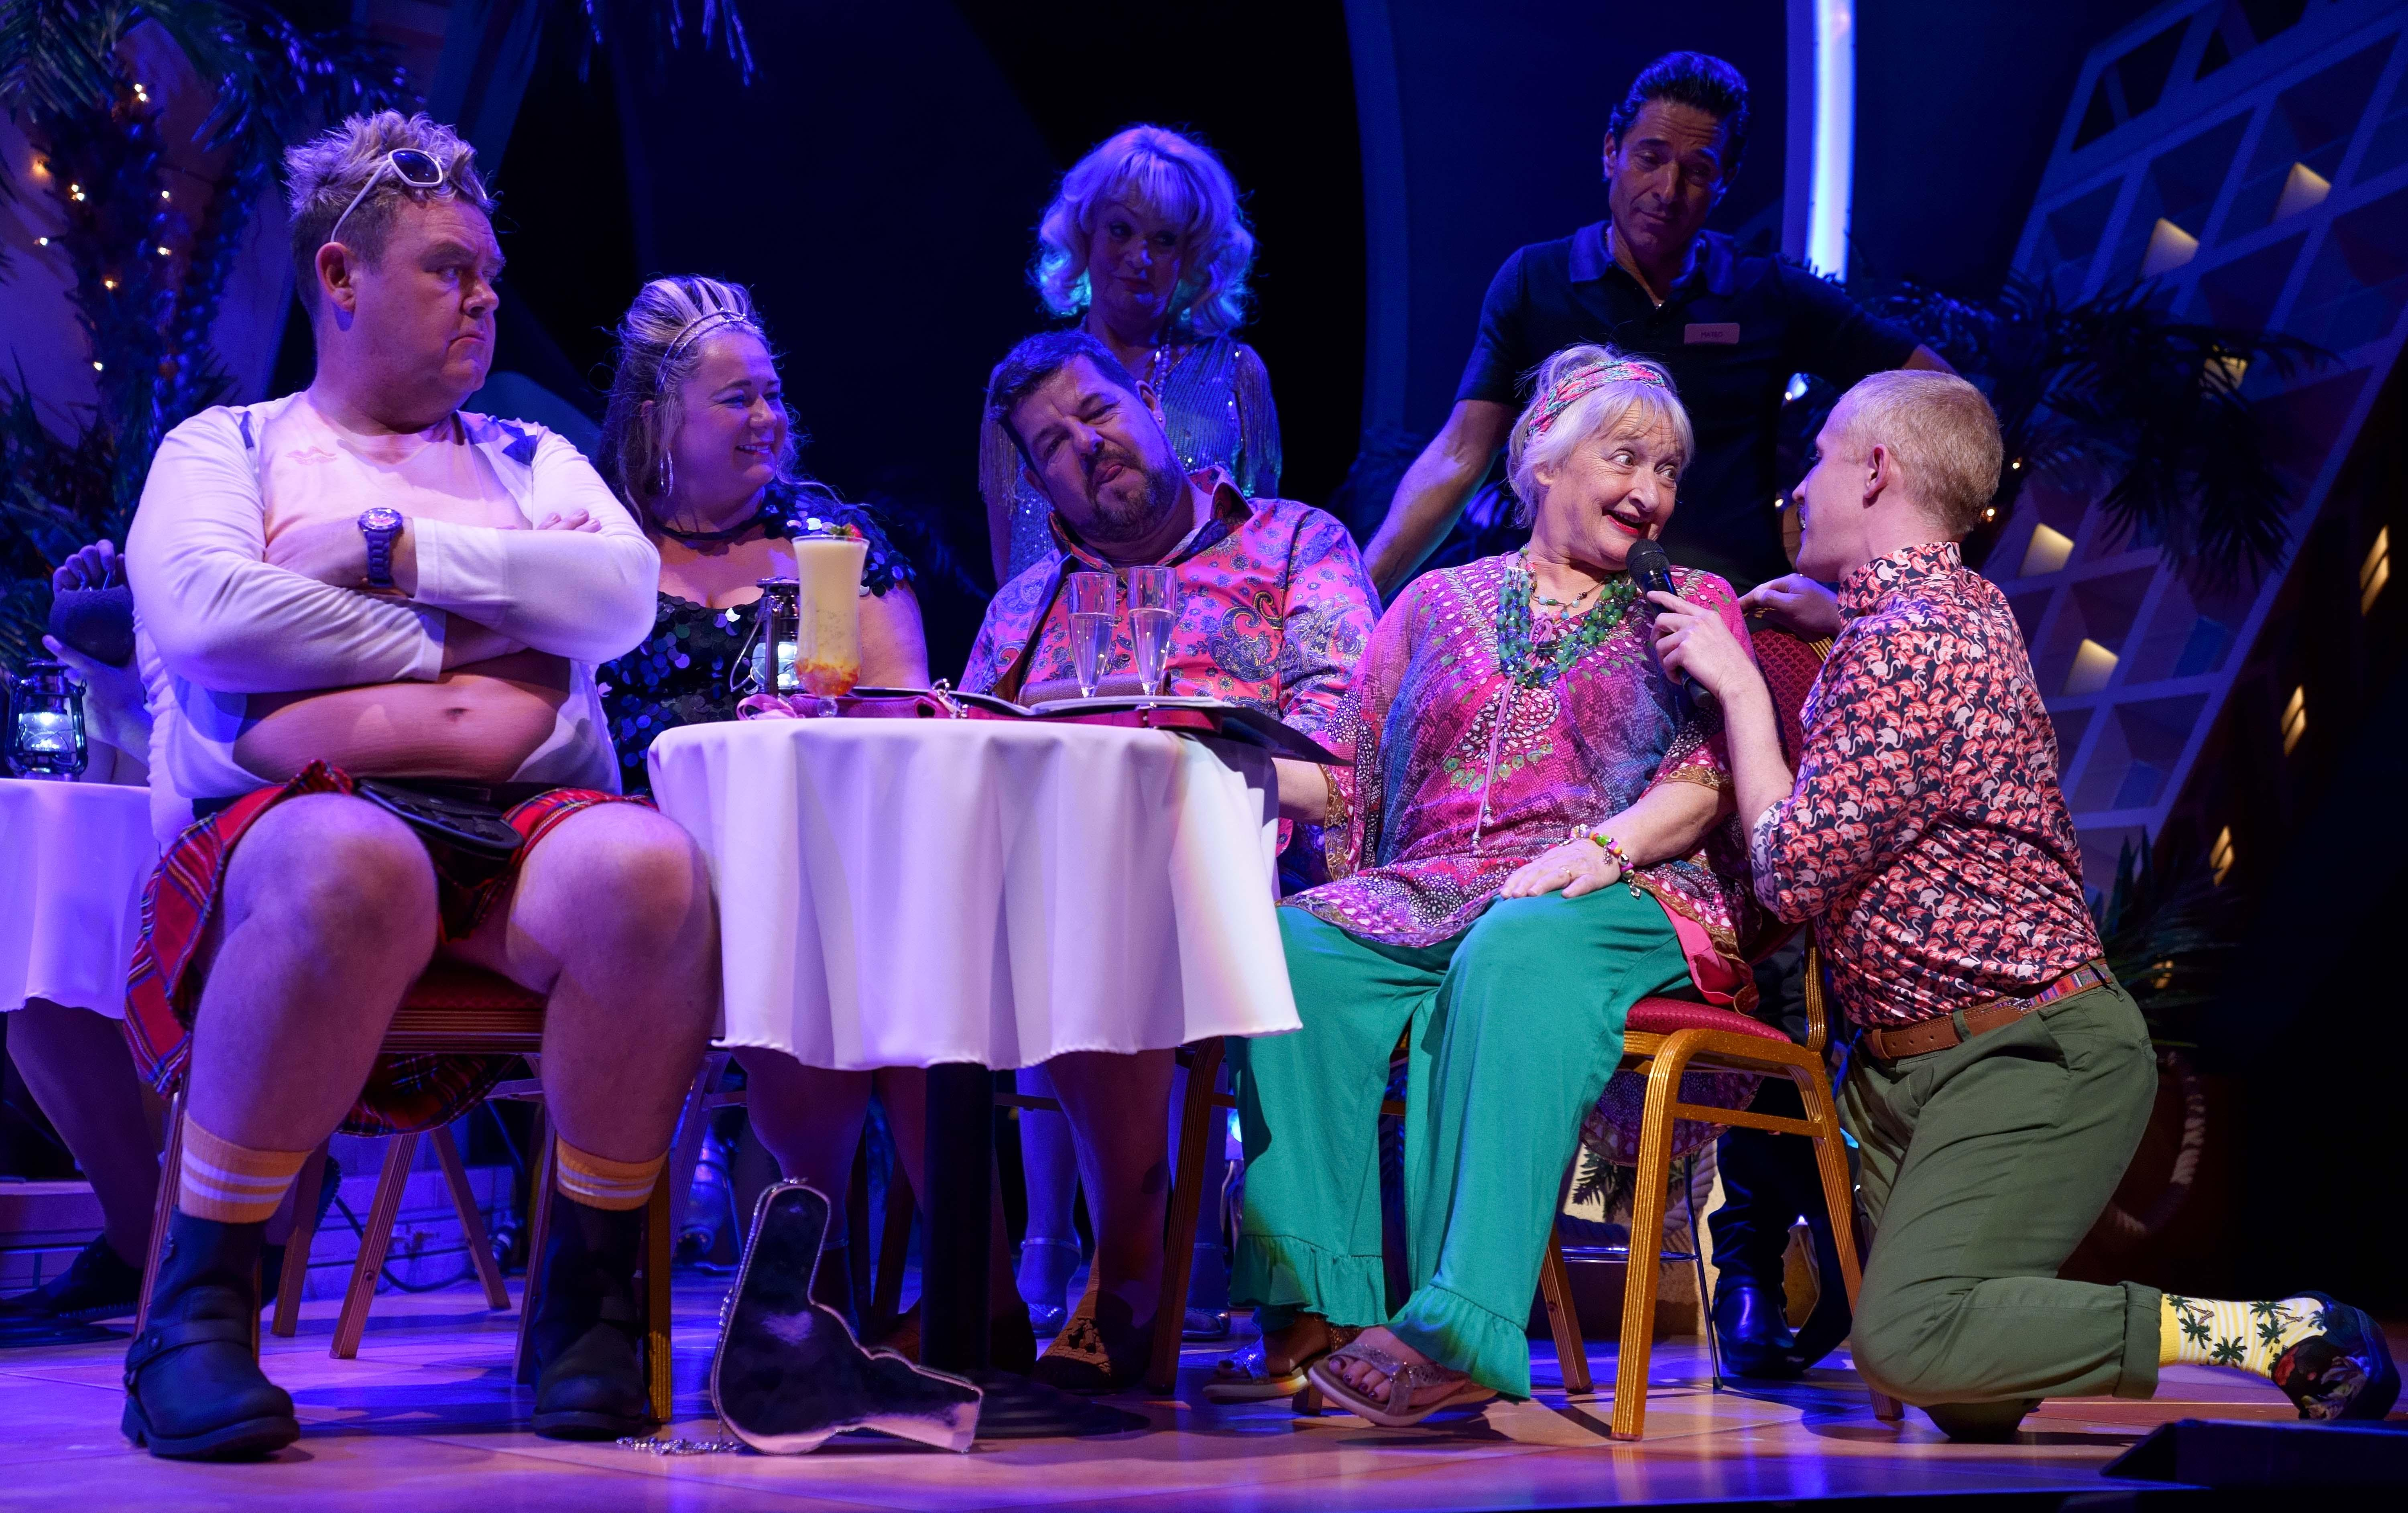 image of Tony Maudsley 'Kenneth', Shelley Longworth 'Sam', Damian Williams 'Derek', Janine Duvitski 'Jacqueline', Adam Gillen 'Liam'